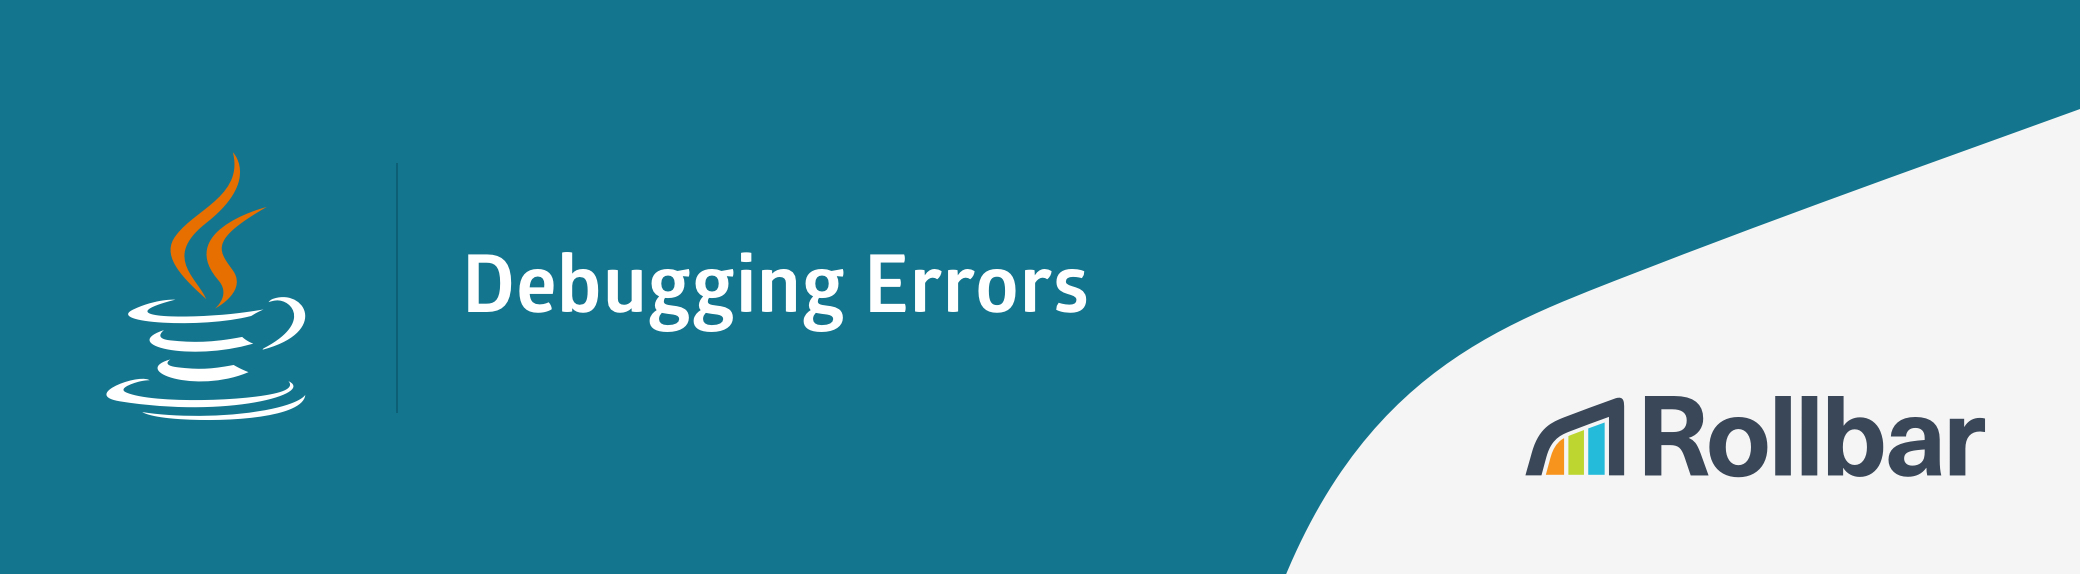 How to debug Java errors | Rollbar